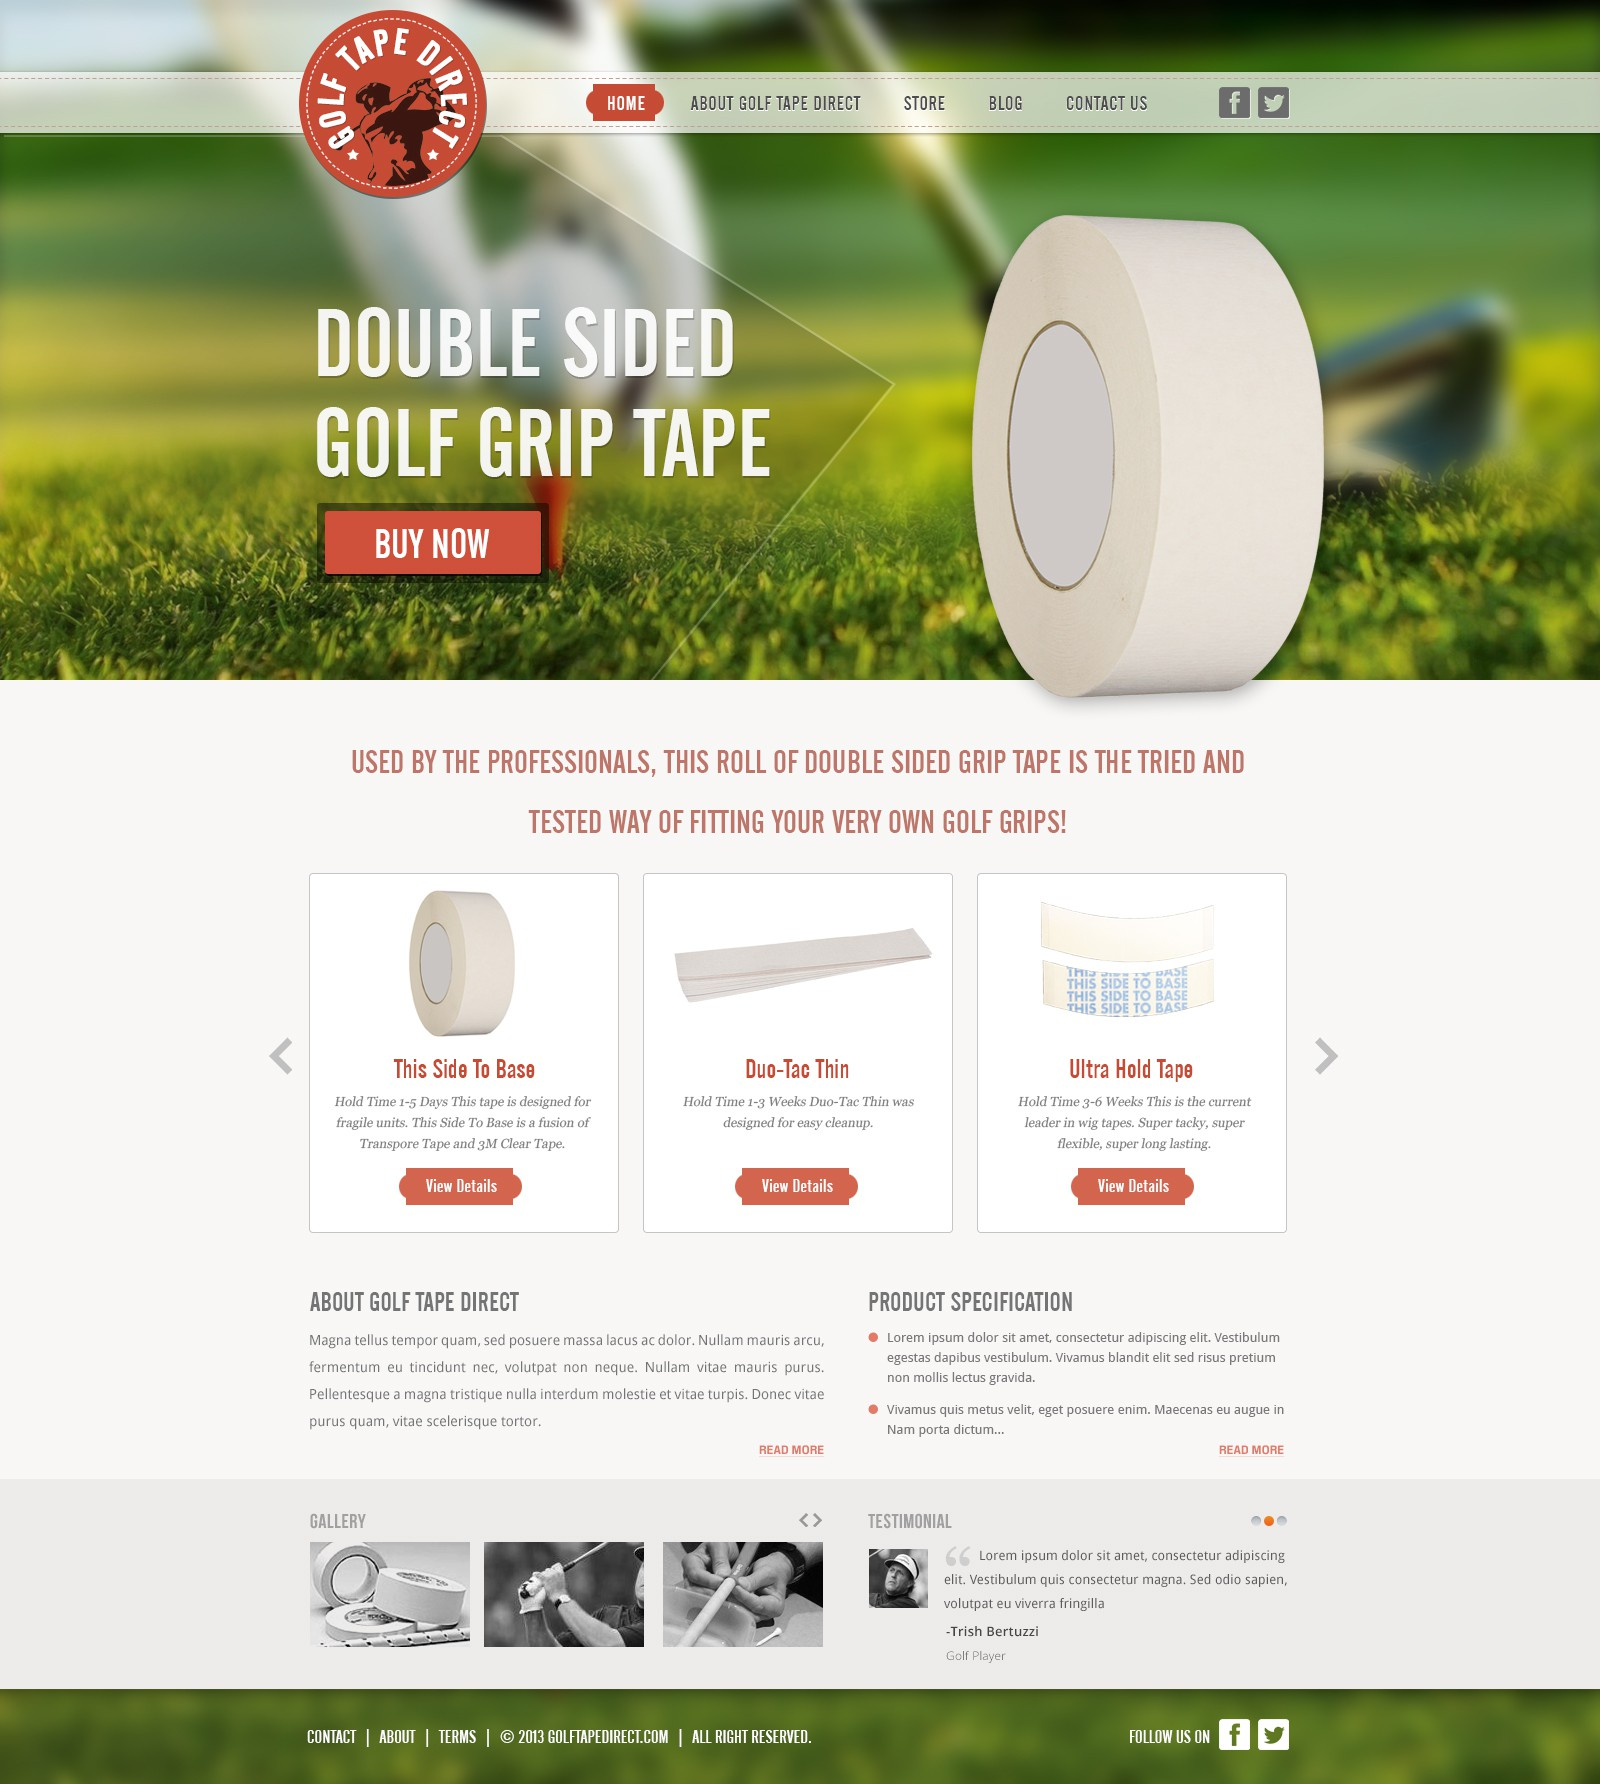 Create the next website design for GolfTapeDirect.com